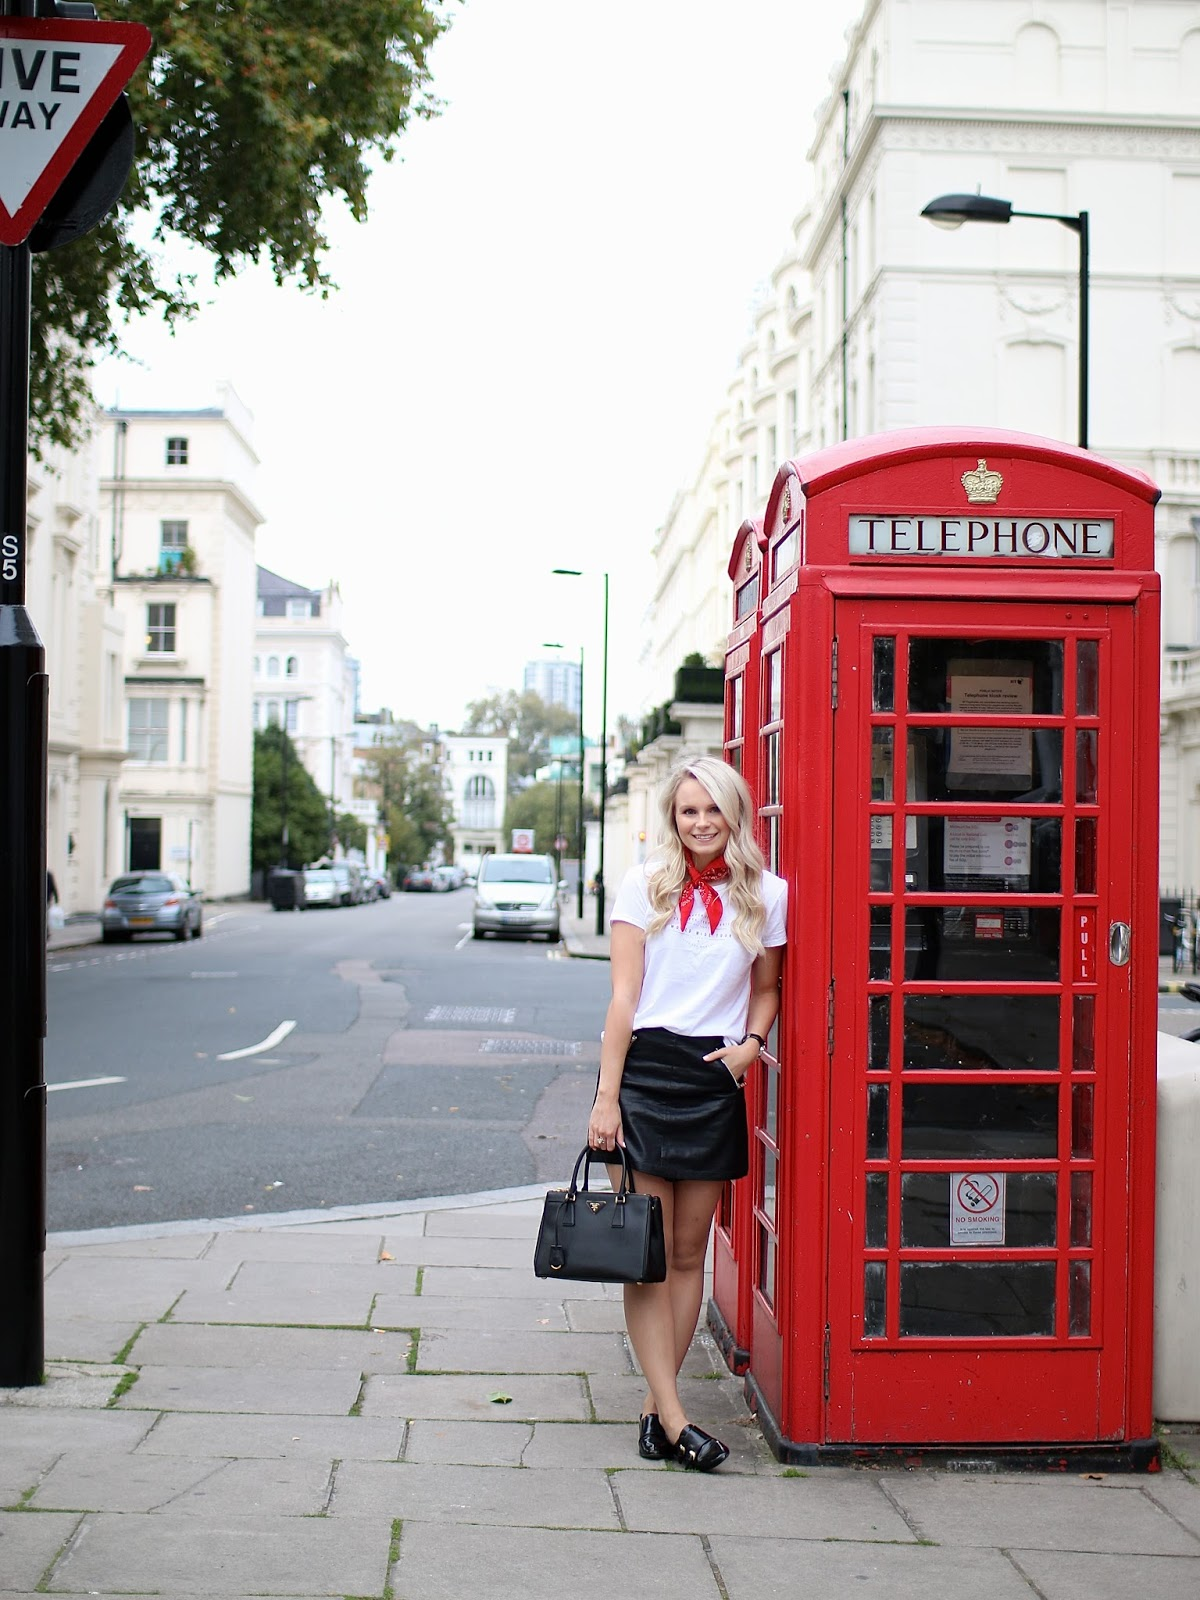 a blonde women with loose curls stands next to red telephone booth in london, notting hill